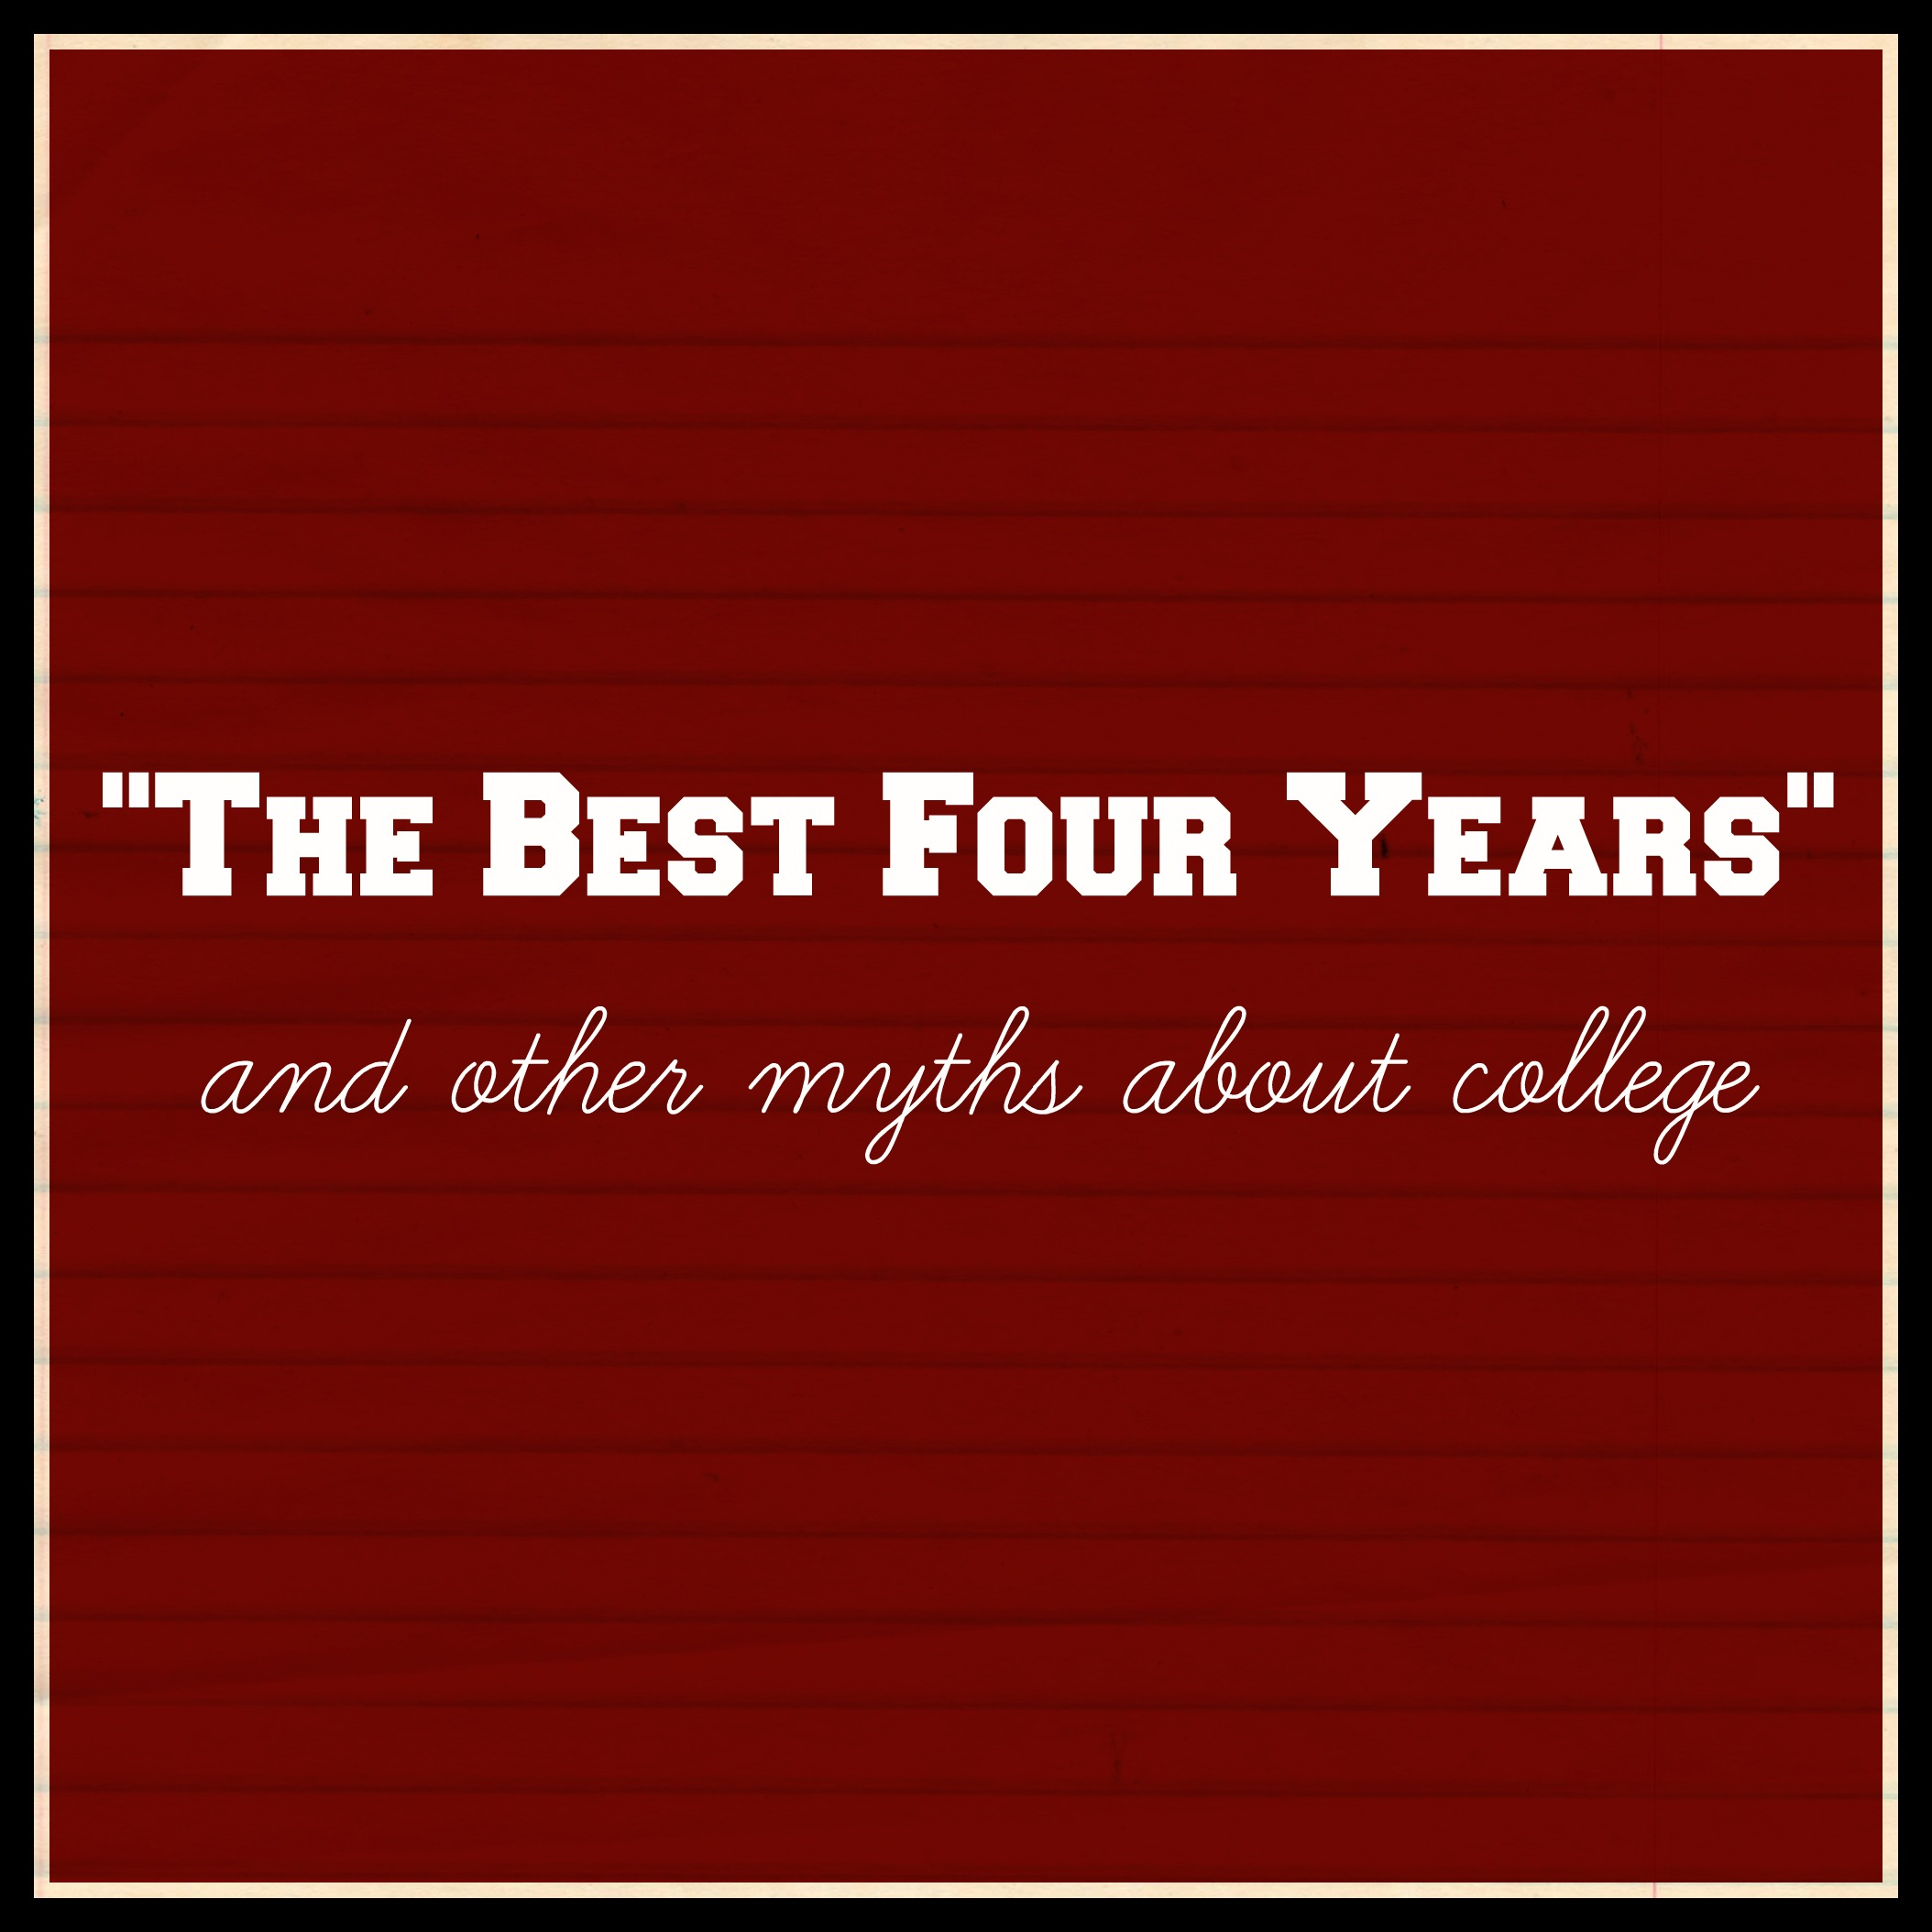 the best four years of your life and other myths about college the best four years 3